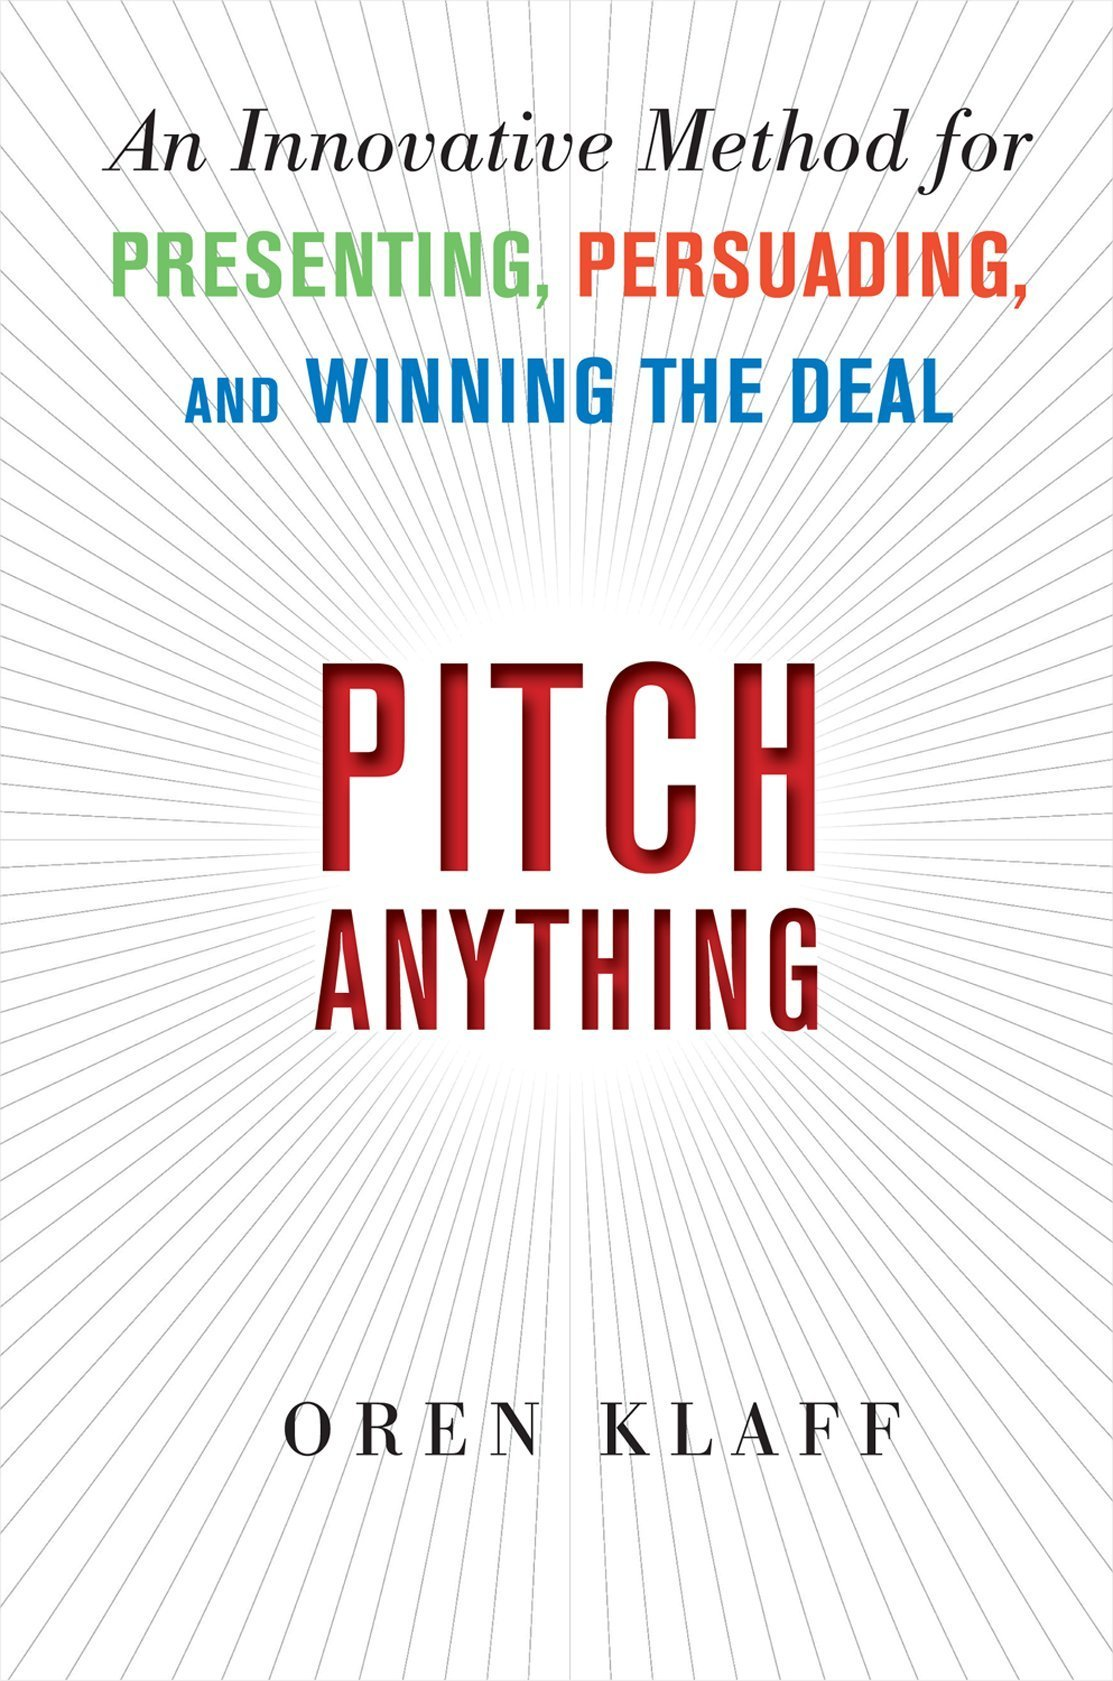 Pitch anything An Innovative Method for Presenting Persuading and Winning the Deal By Oren Klaff Amazon - Pitch anything: An Innovative Method for Presenting, Persuading, and Winning the Deal By Oren Klaff